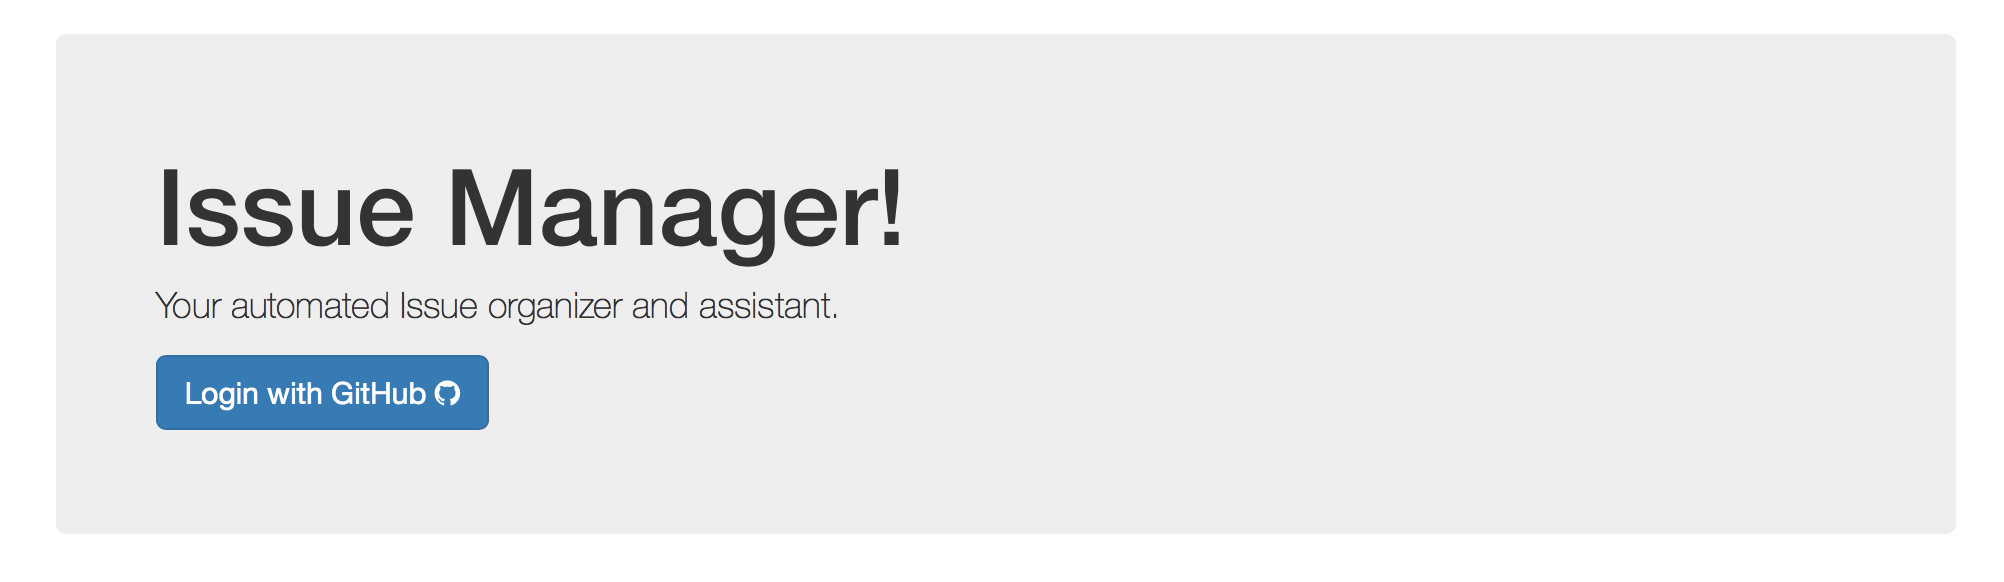 issue-manager-login